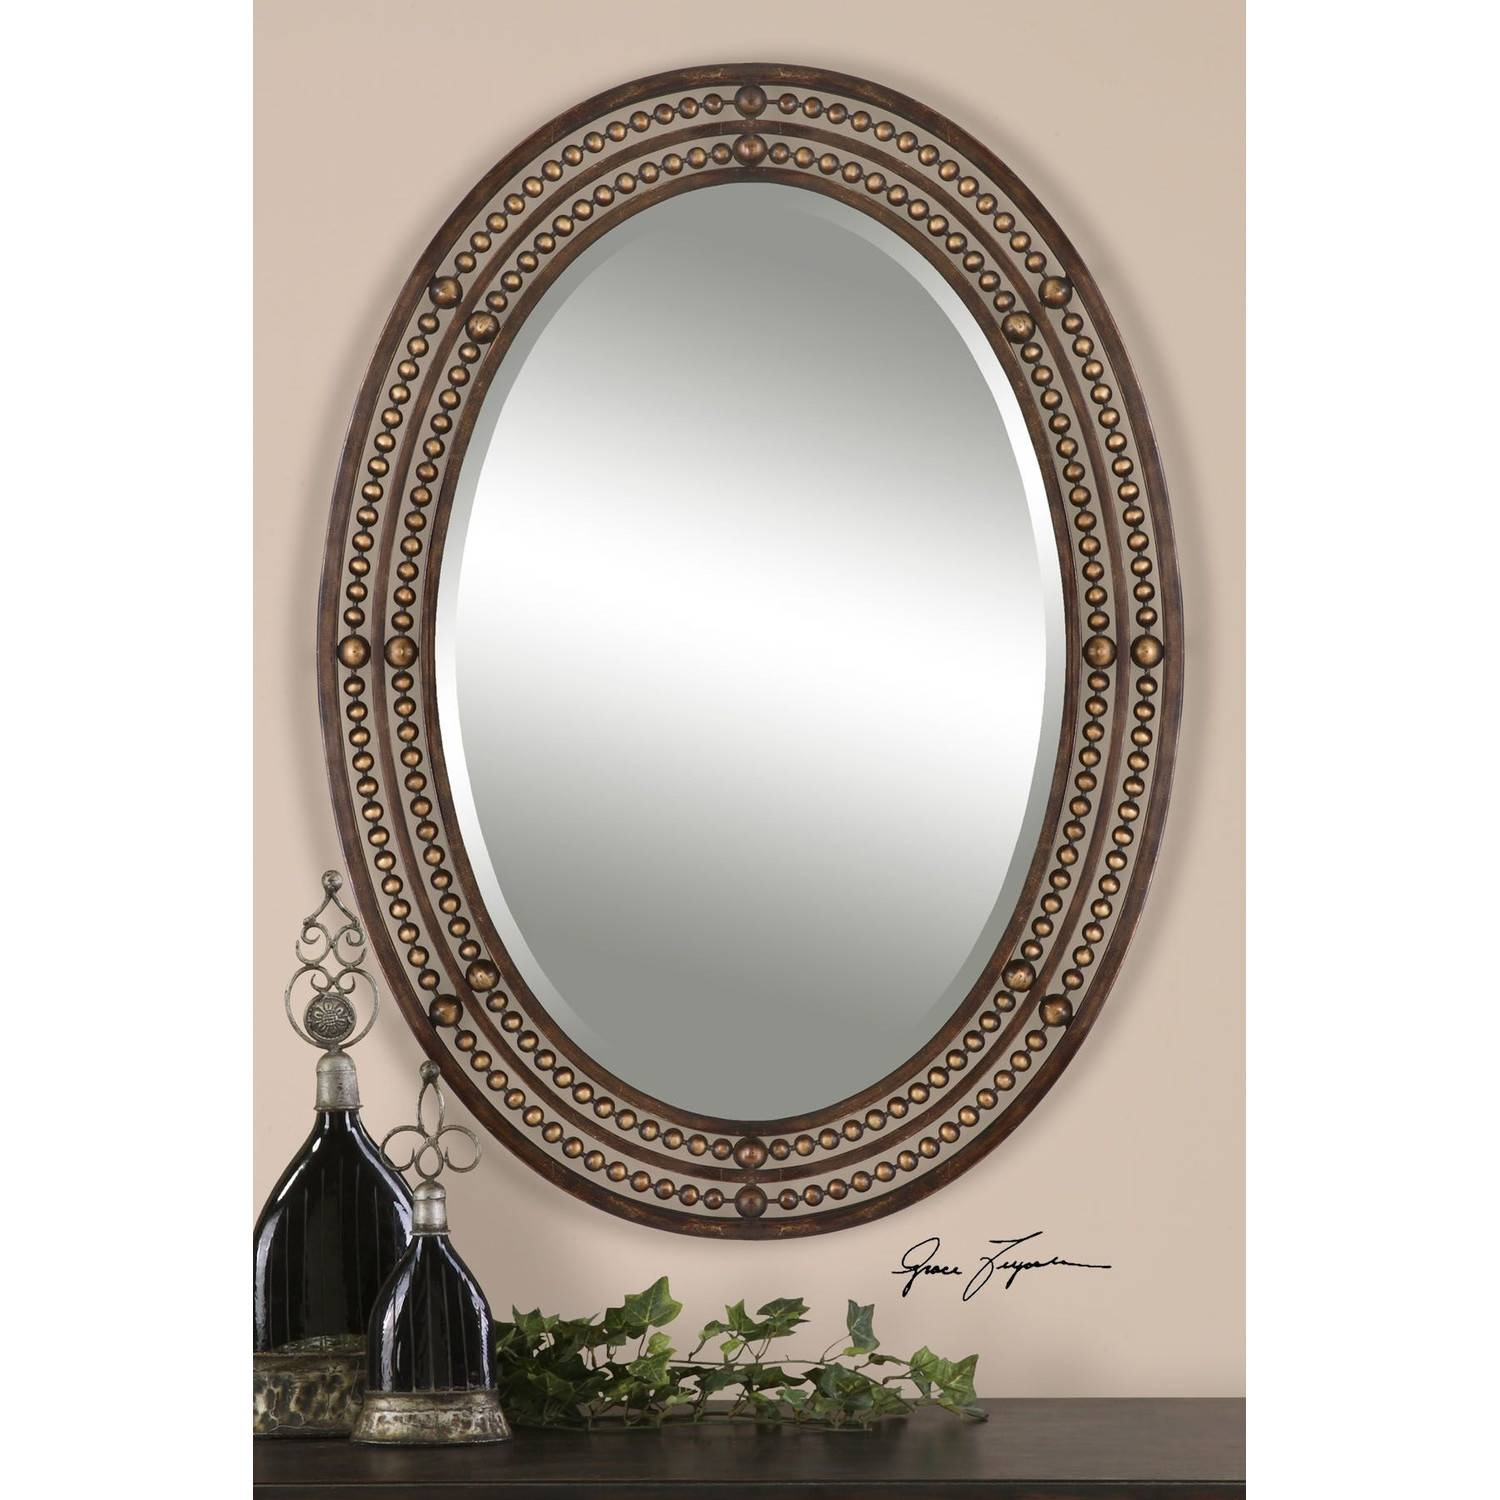 Bathroom Ideas: Great Oval Bathroom Mirrors For The Bathroom with regard to Oval Mirrors for Walls (Image 3 of 25)